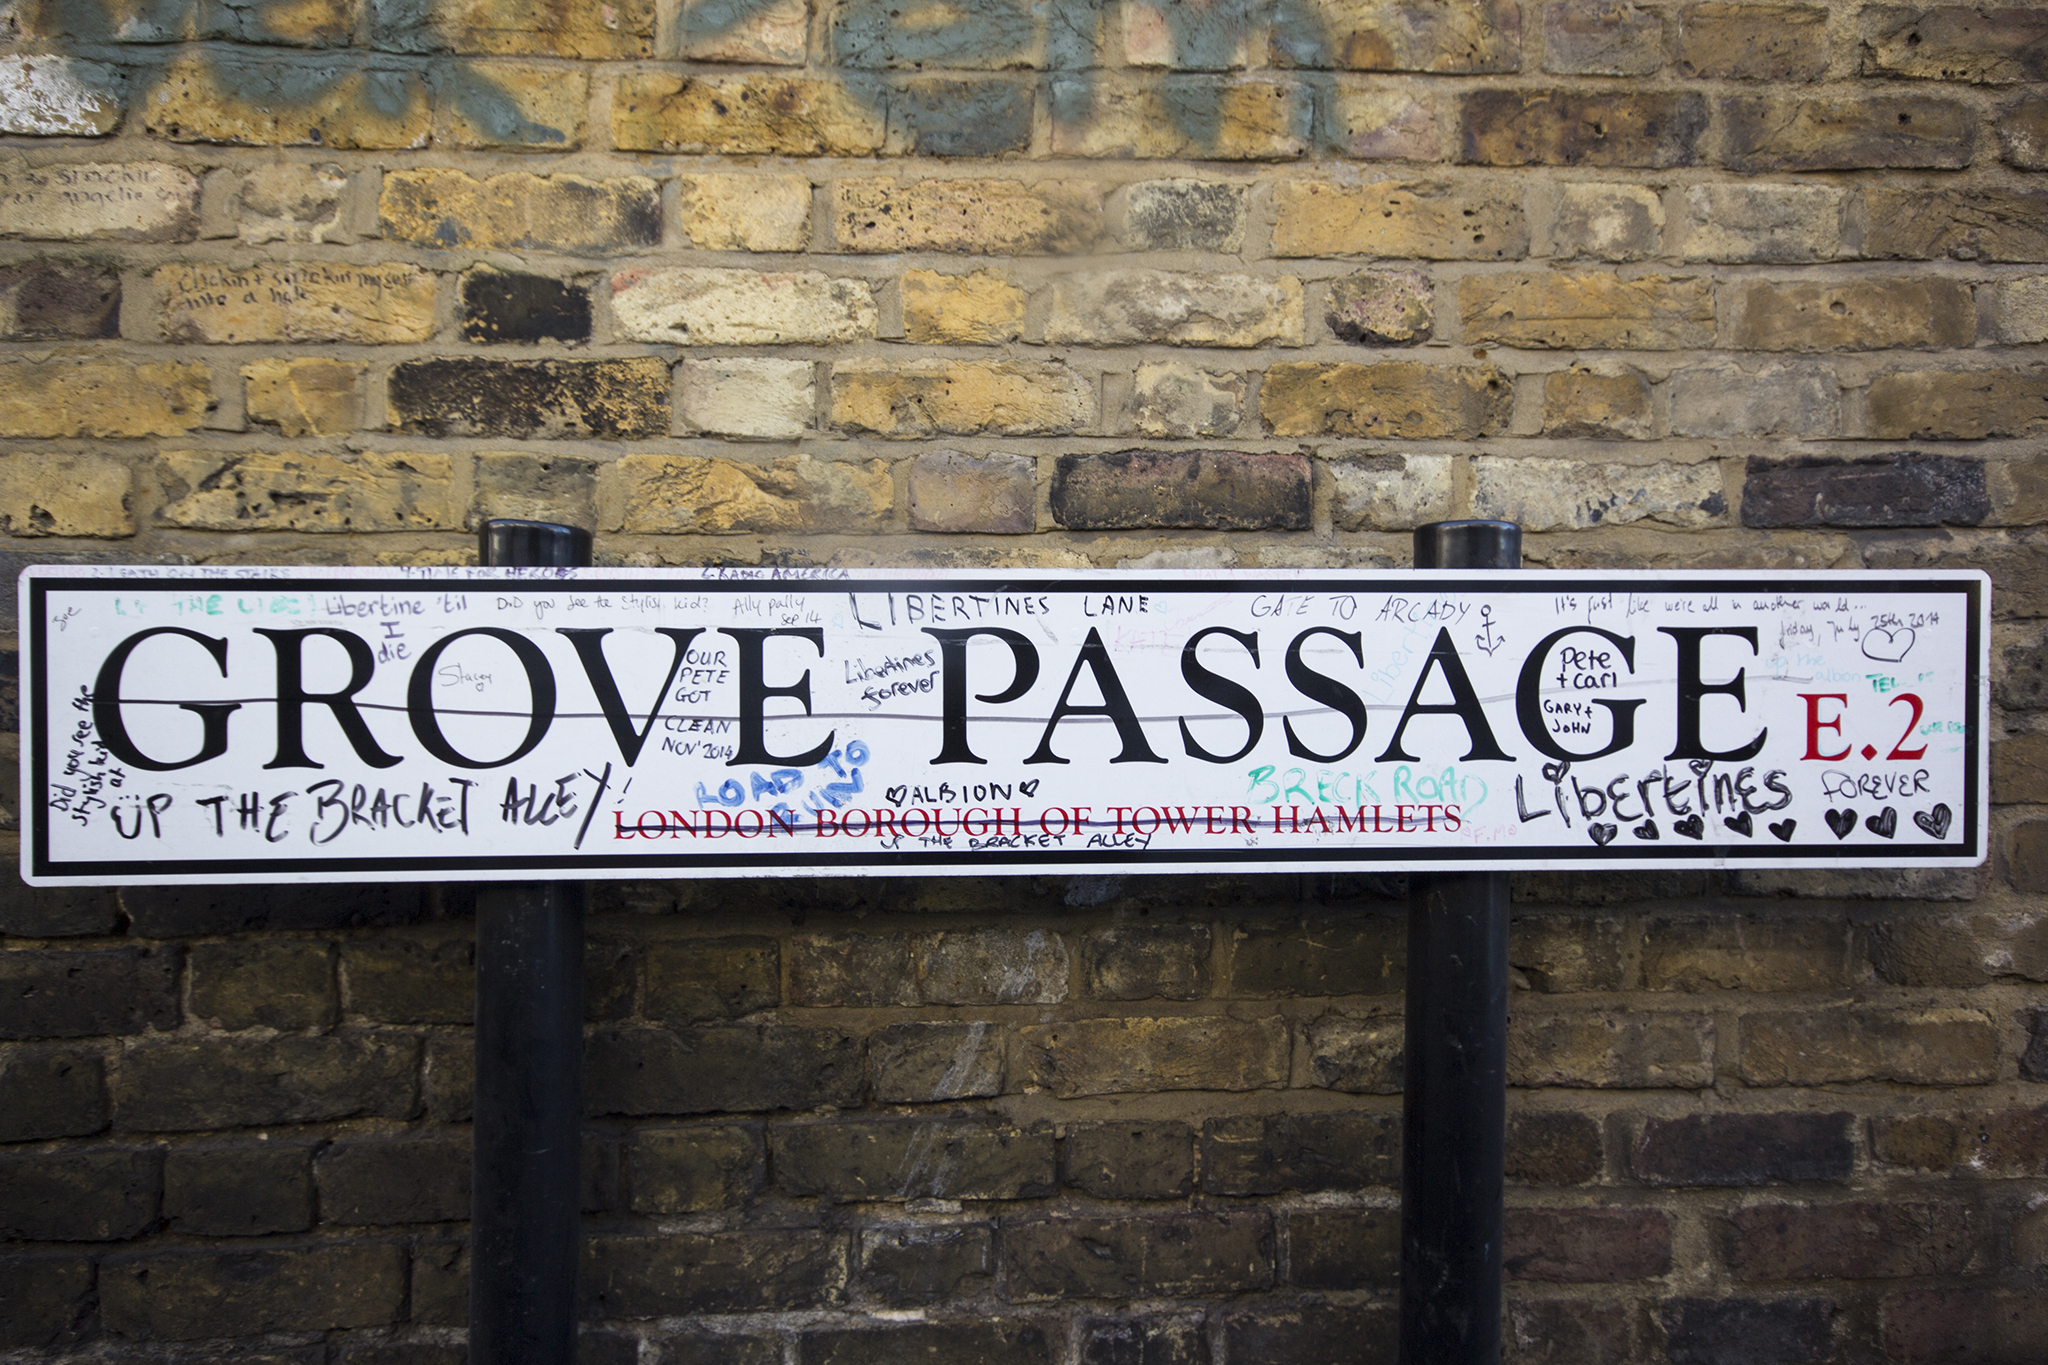 Grove Passage libertines graffiti